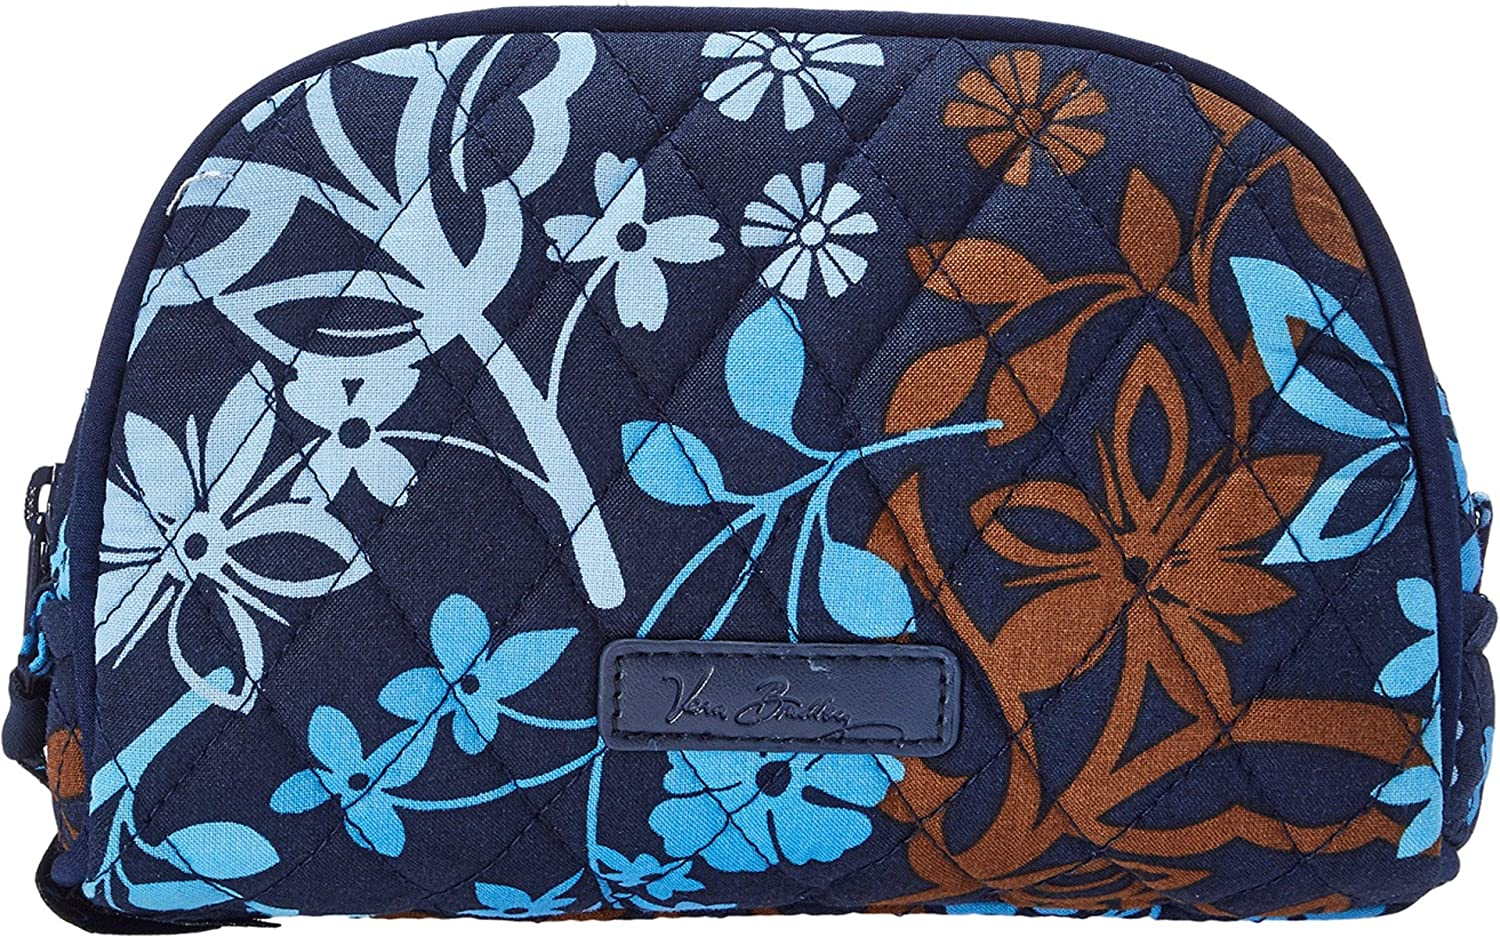 Vera Bradley Luggage Women s Small Zip Cosmetic Java Floral Cosmetic Bag